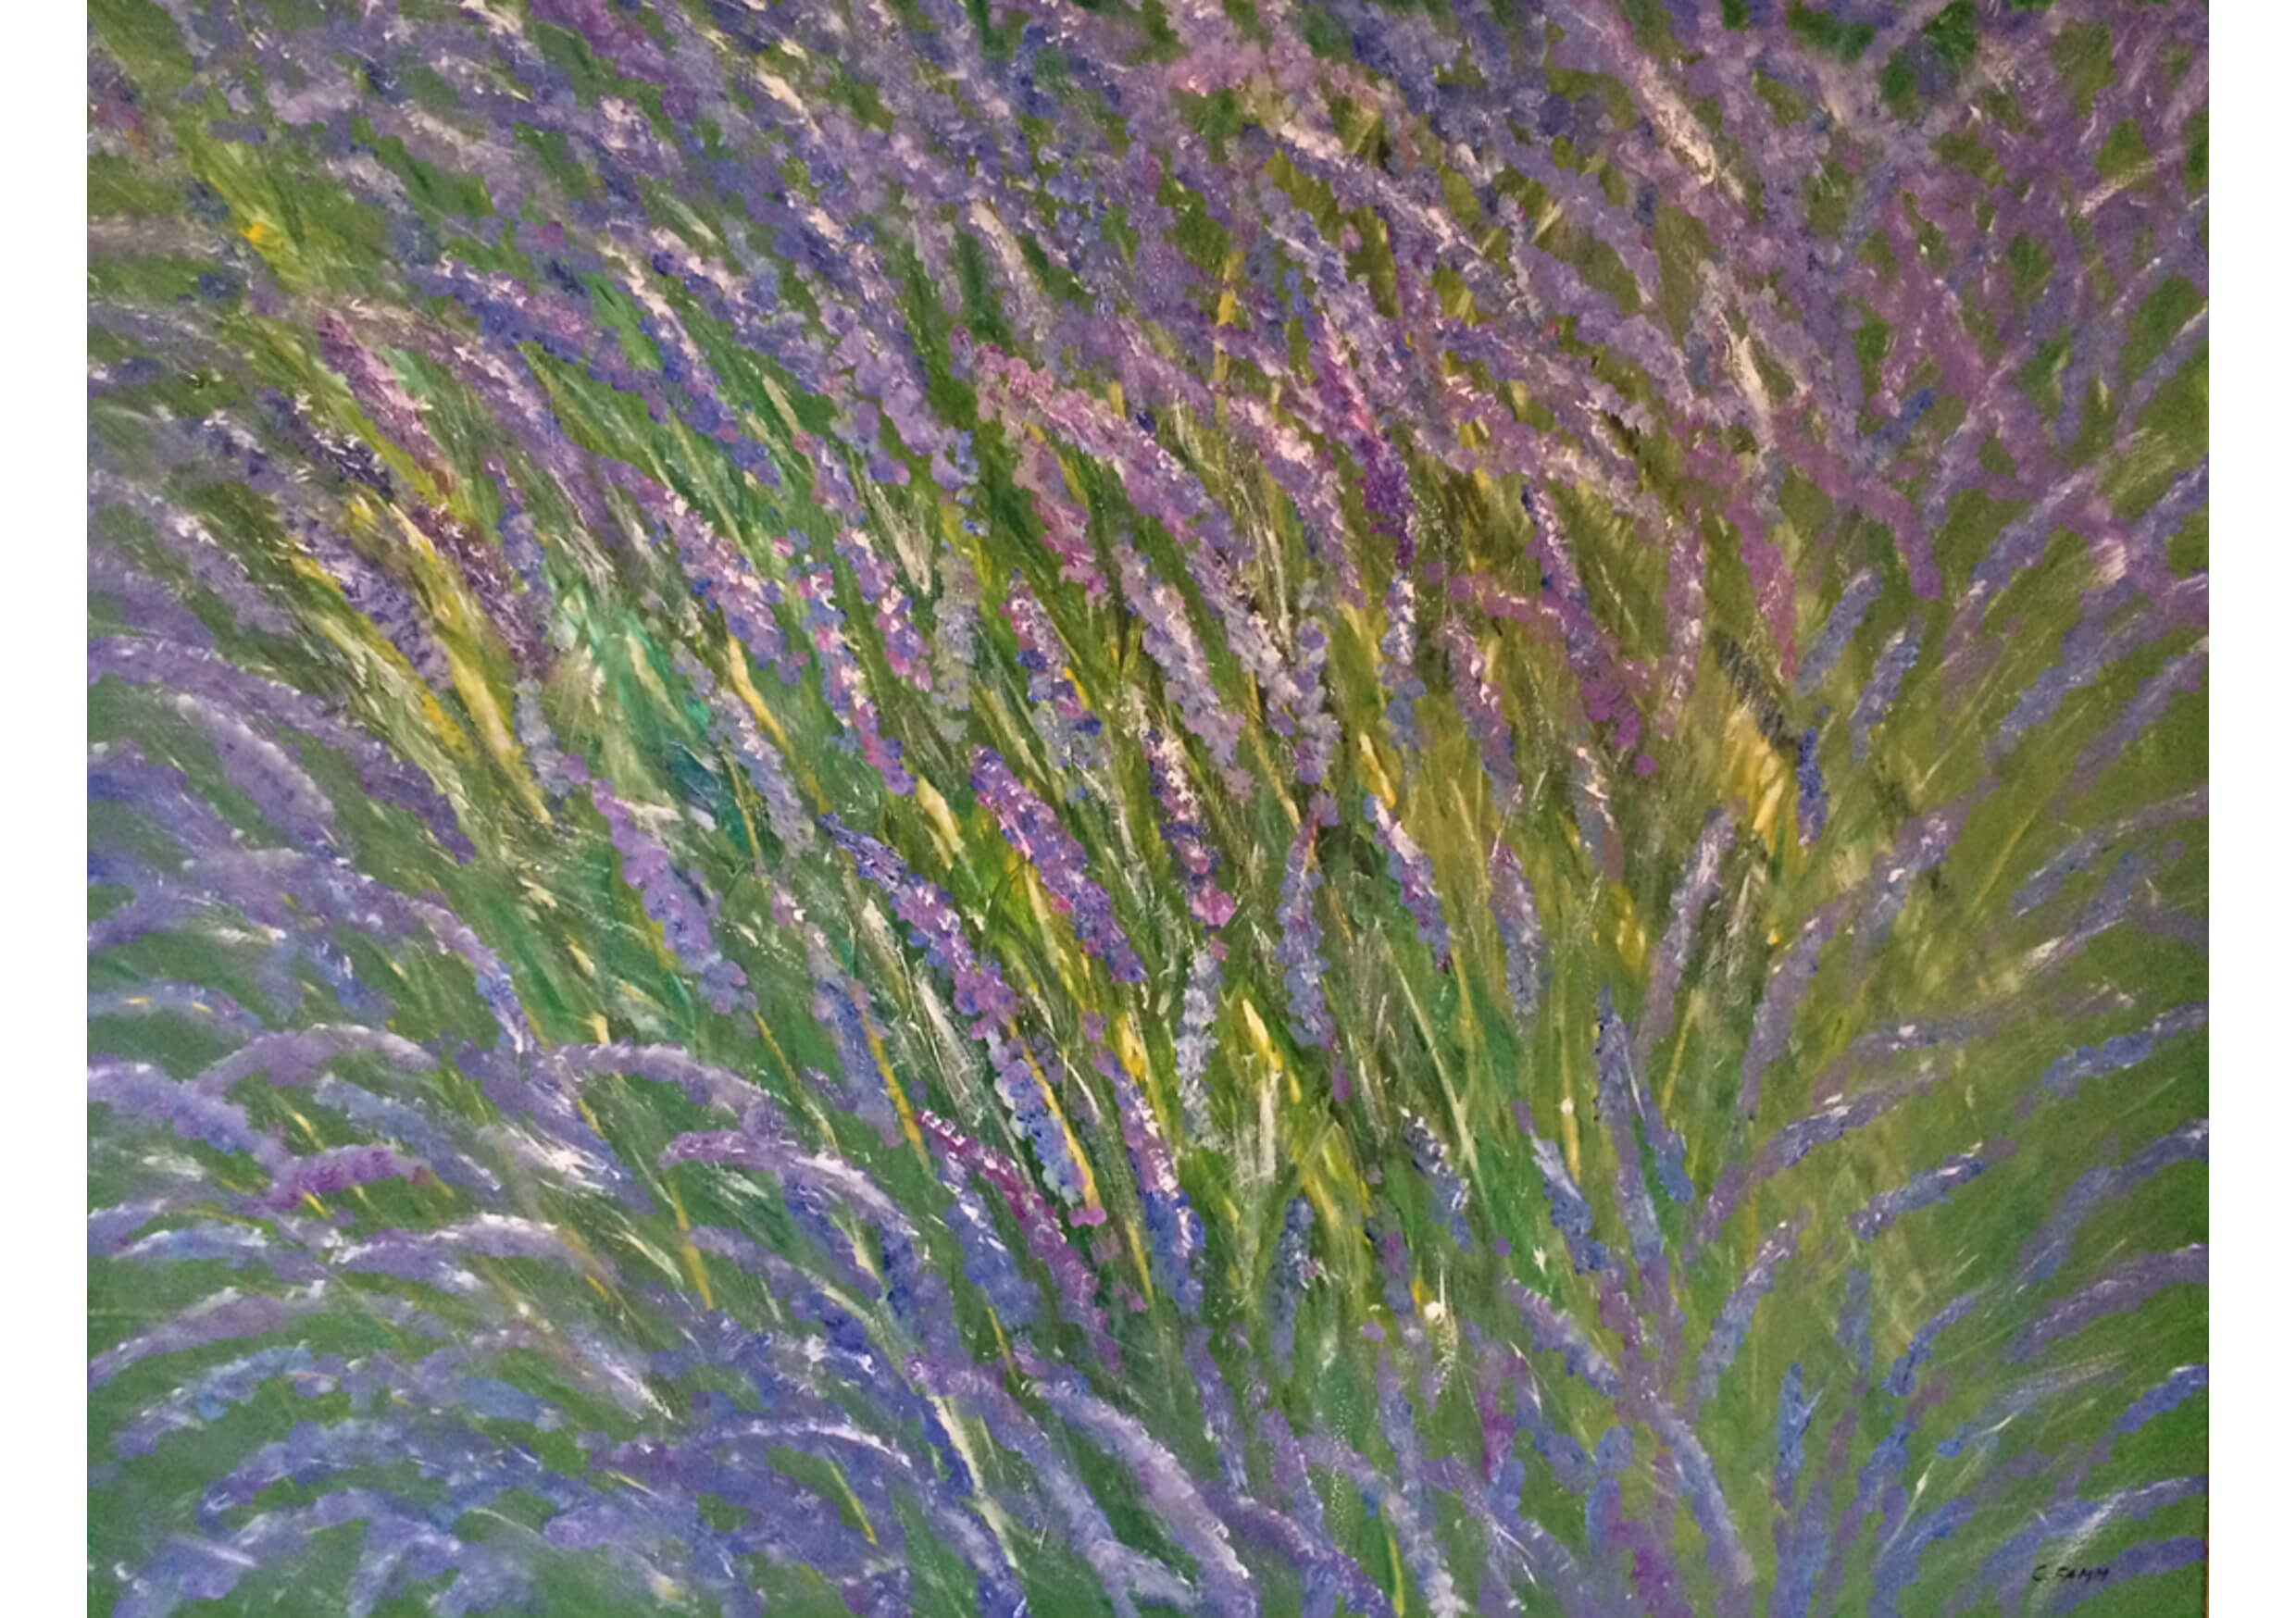 Lavender dream, Oil on canvas, 90 x 115 cm